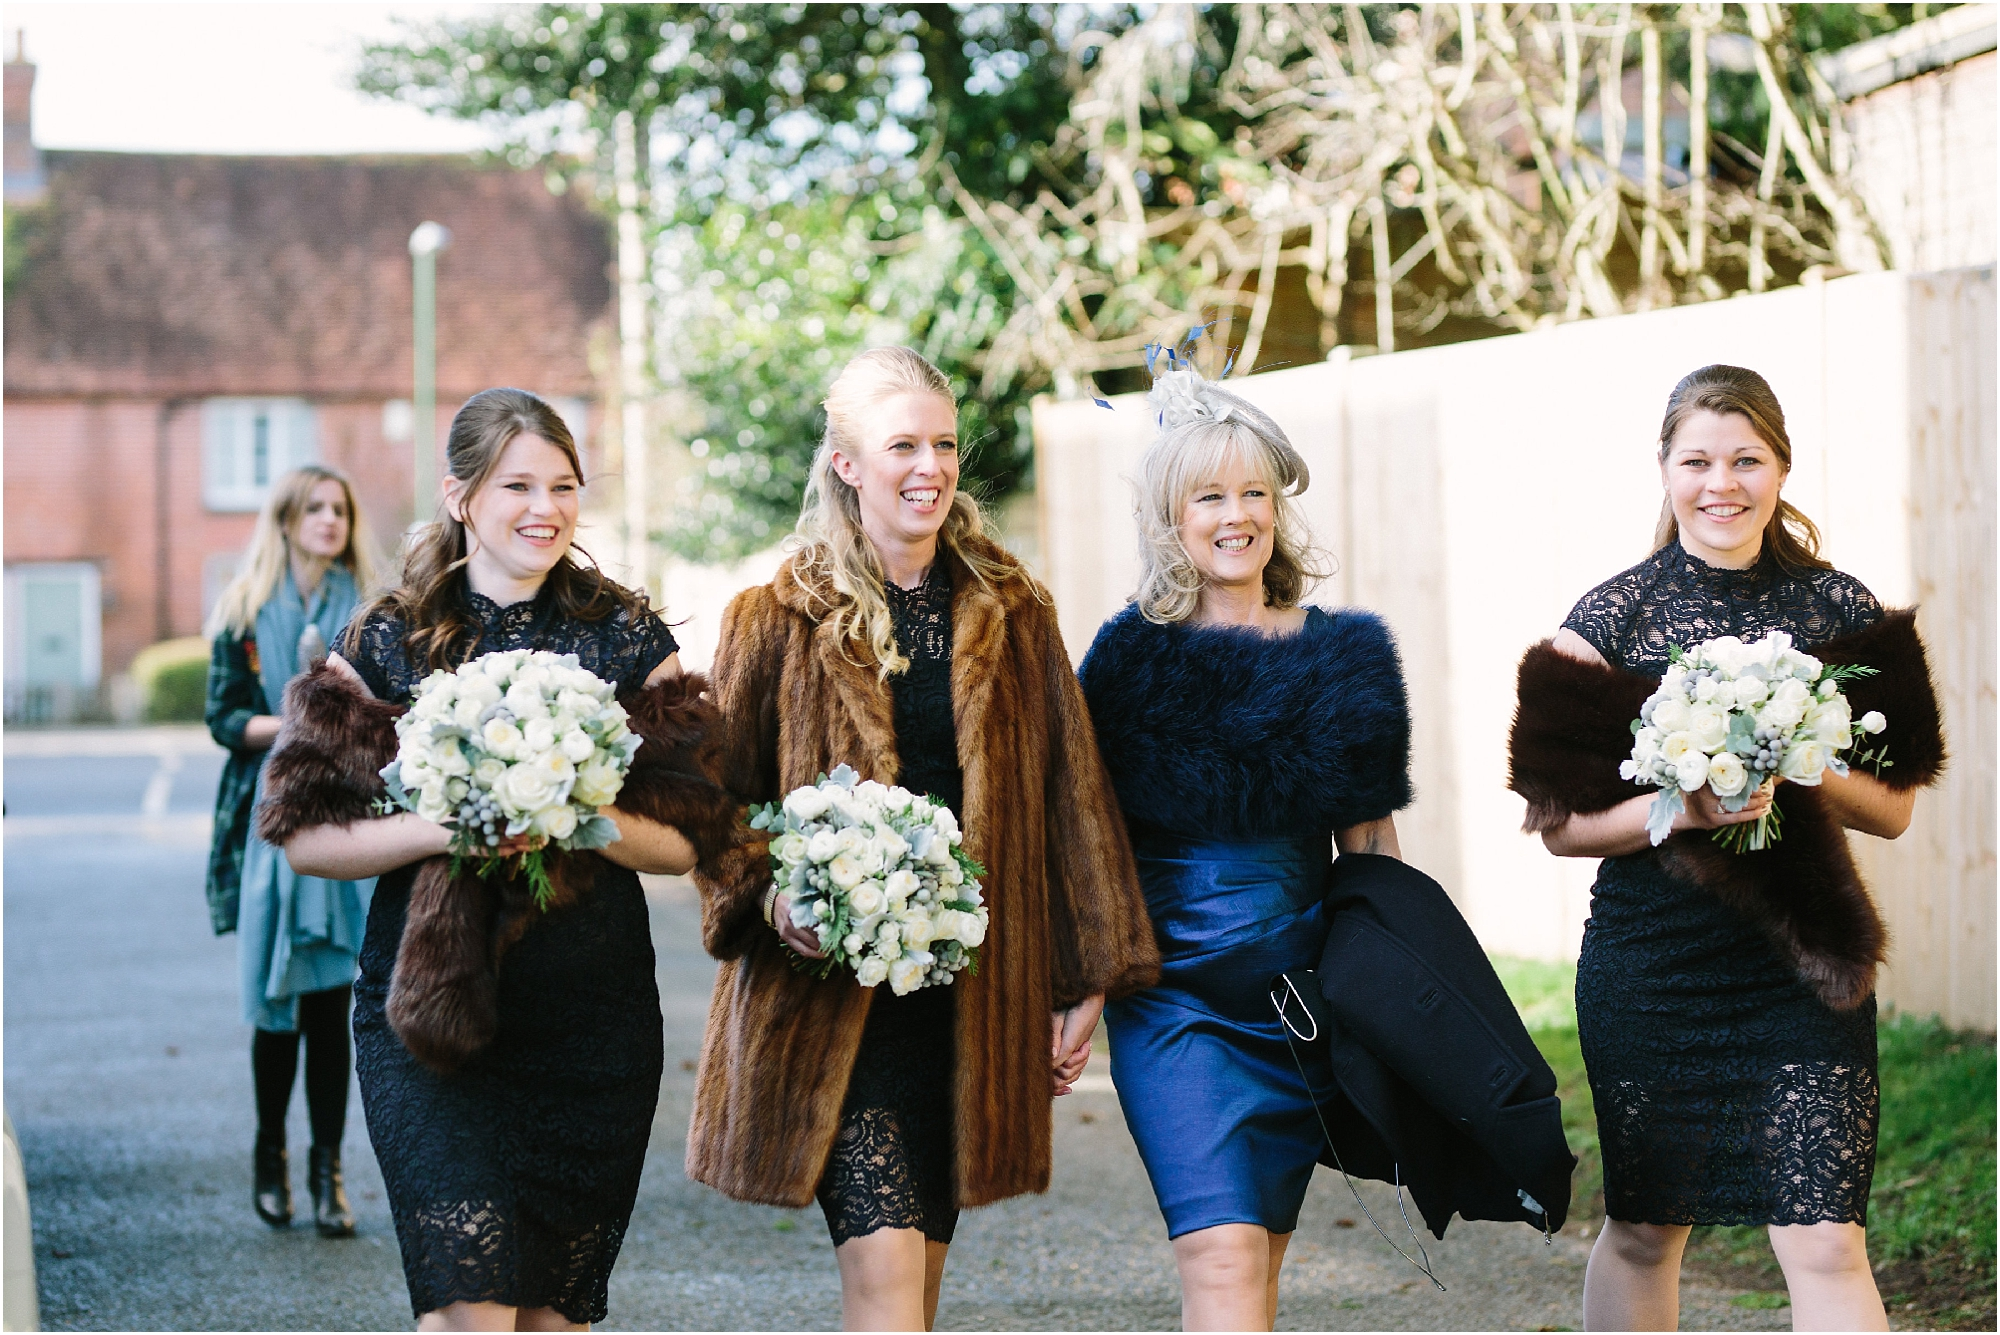 Bridesmaids in navy dresses with fur